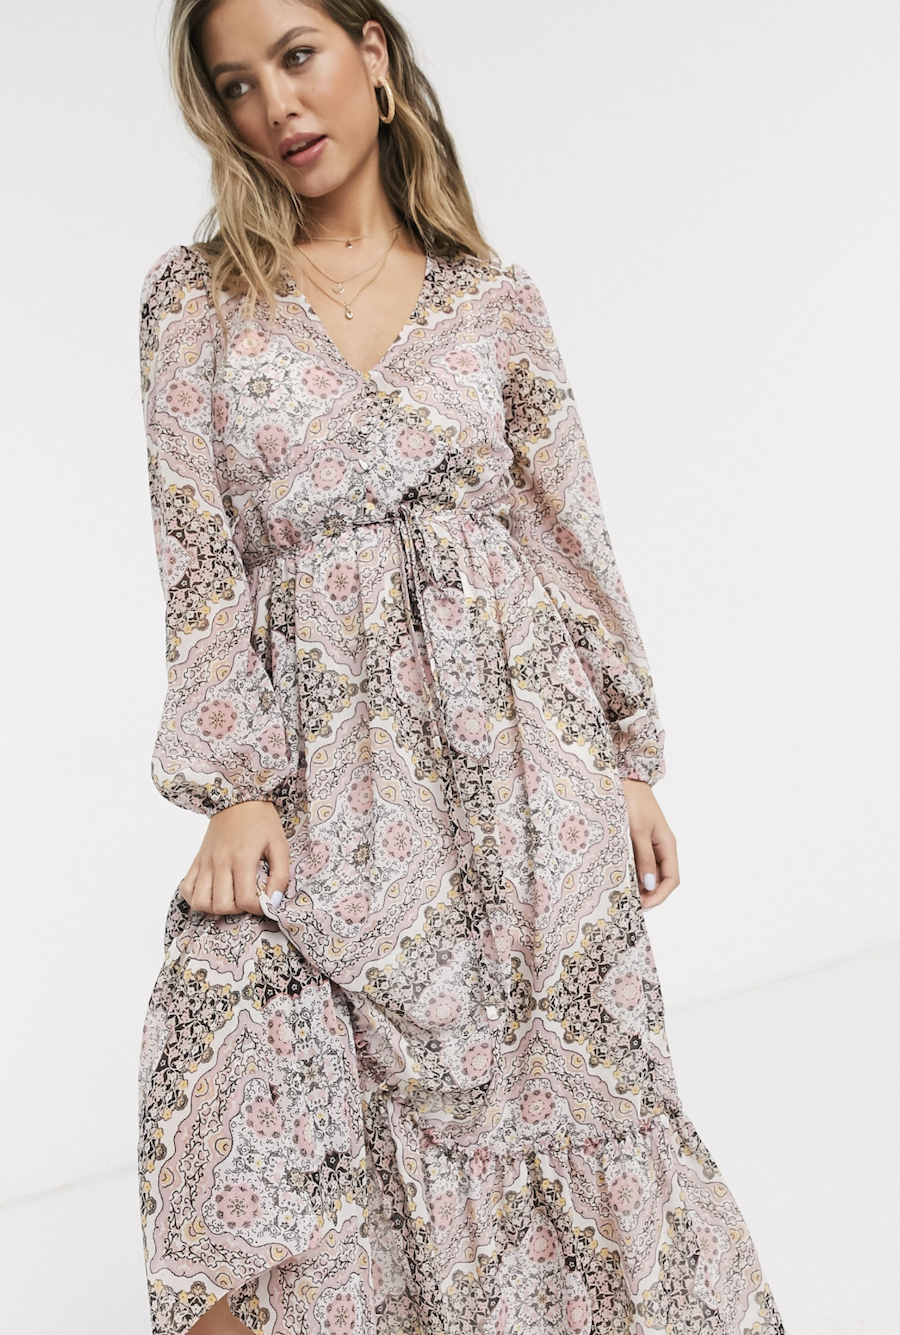 Miss Selfridge pink cashmere print v-neck puffed sleeve midi dress